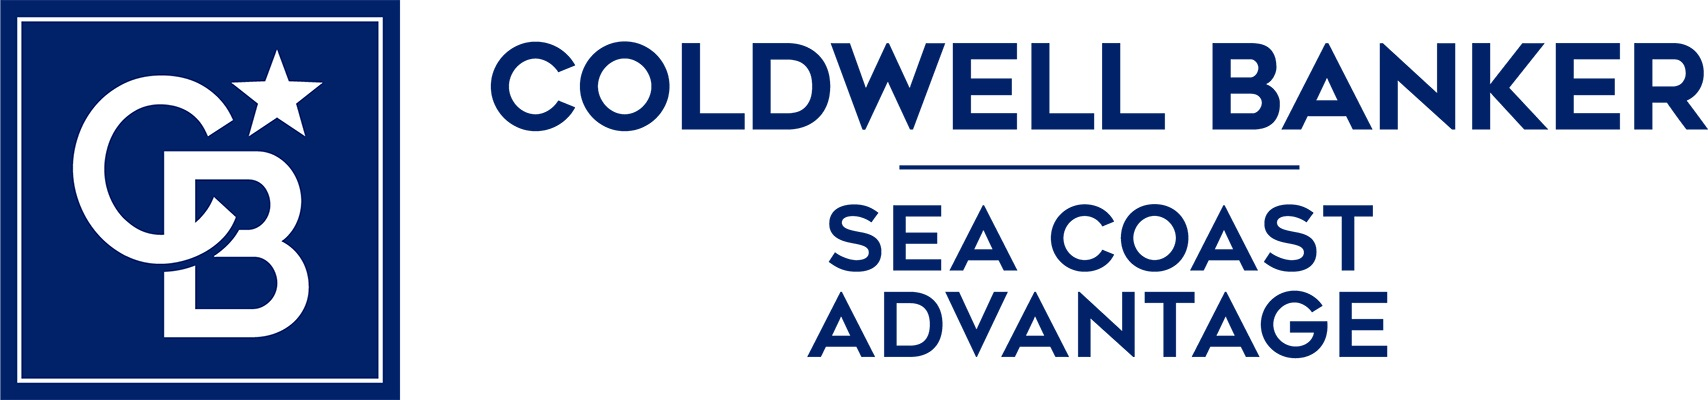 Linda Liederbach - Coldwell Banker Sea Coast Advantage Realty